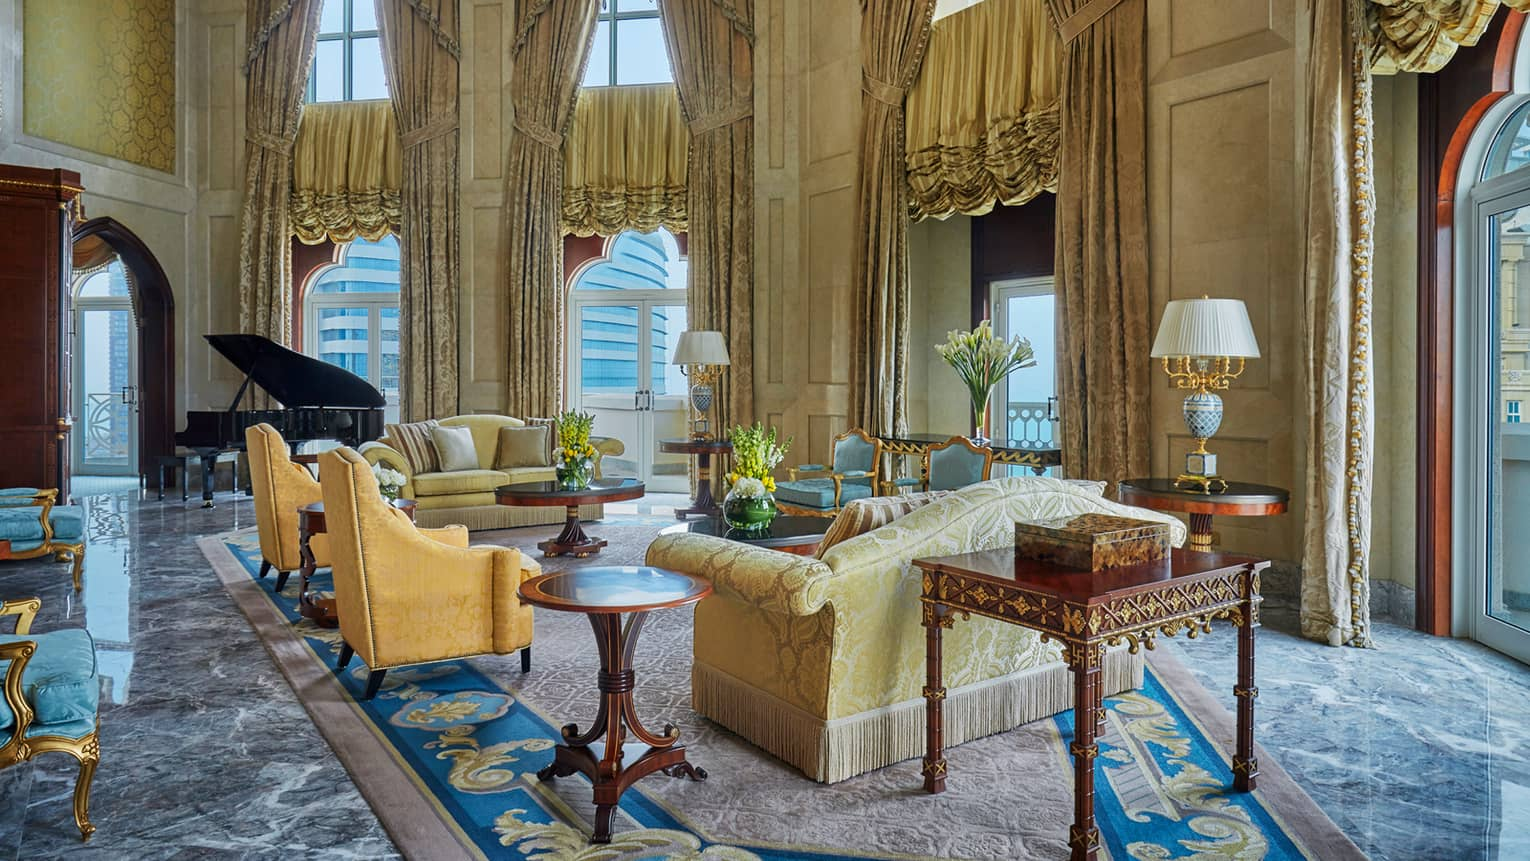 Royal Suite large living room with sweeping ceiling, blue-and-gold carpet, gold sofas and curtains